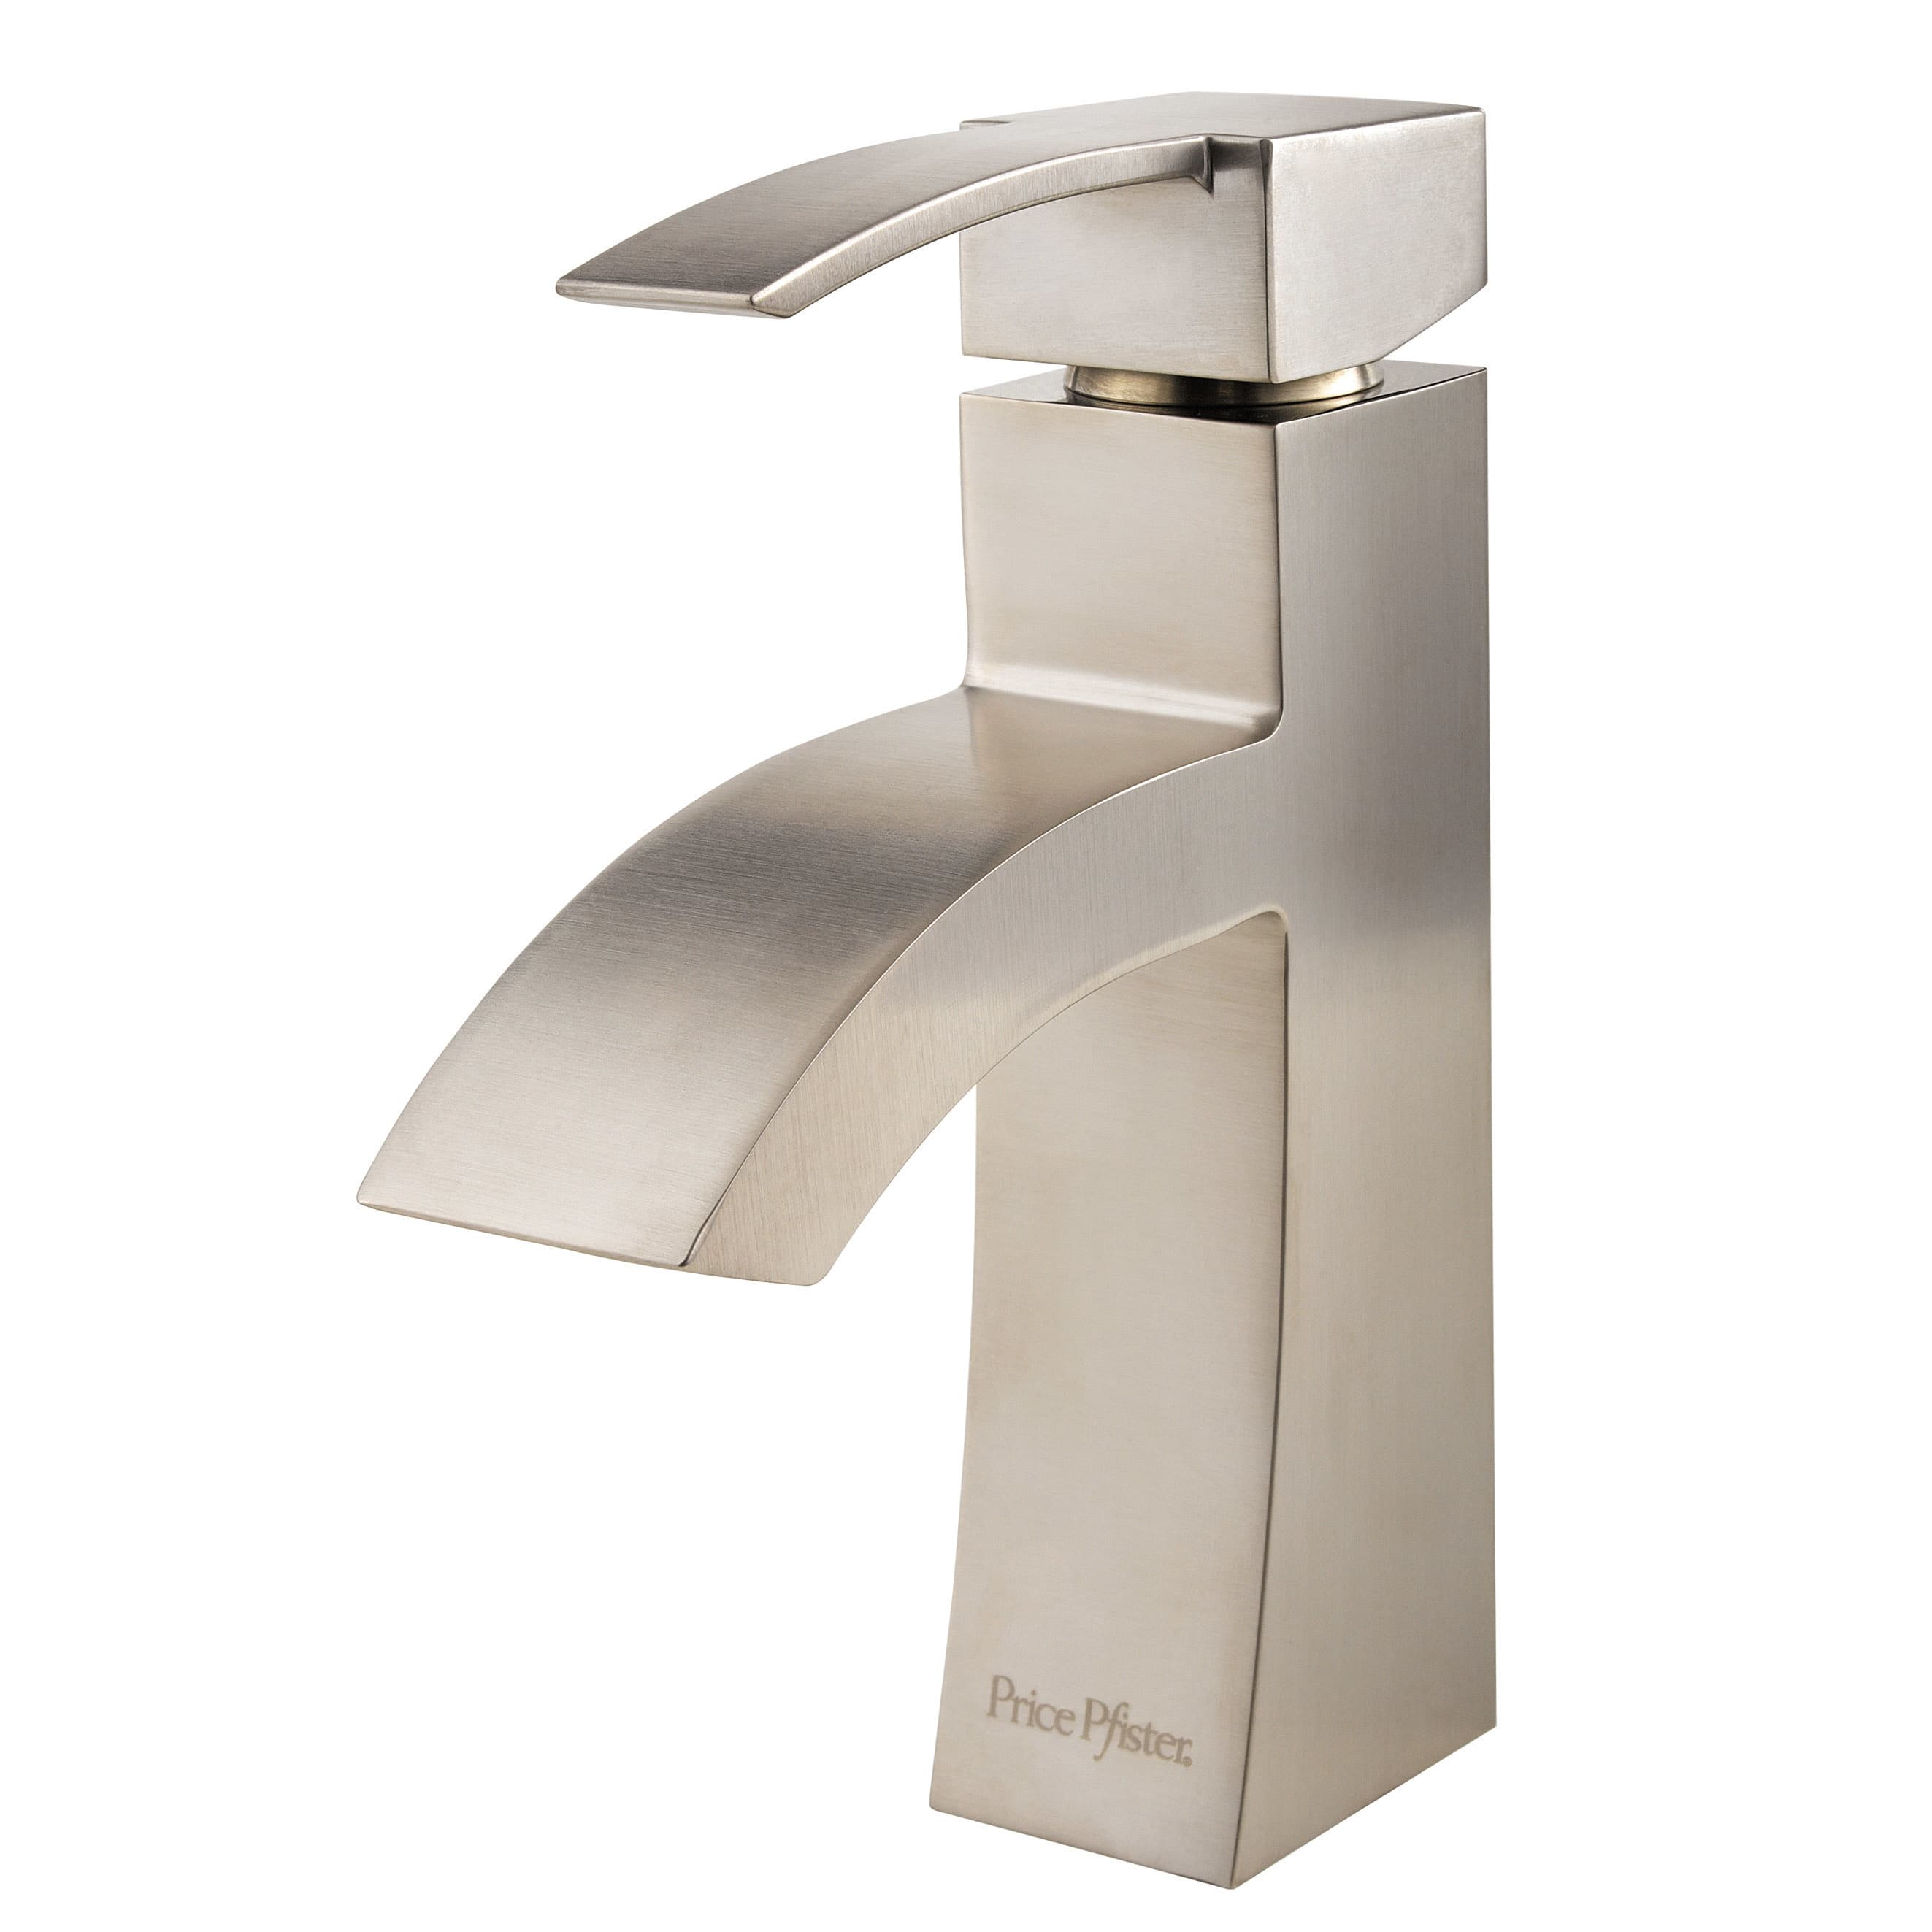 amazon tub pfister how your filler faucet bathroom freestanding replace standard spout price delta roman s american to in bathtub sink with home walmart hand shower leak faucets